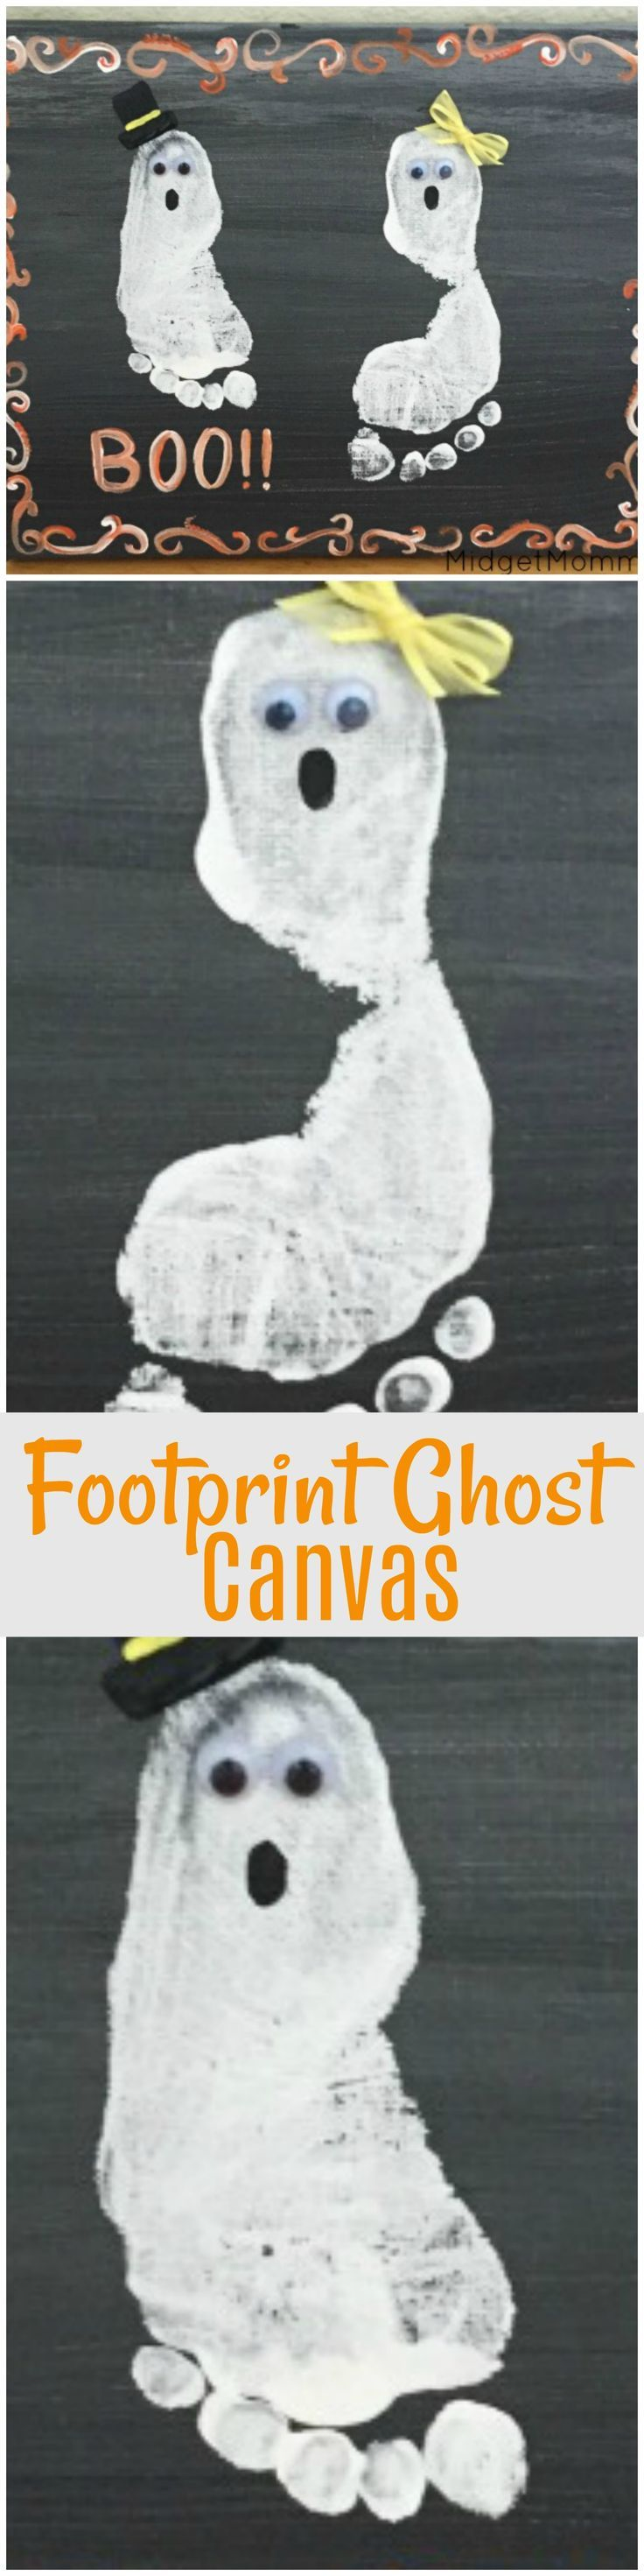 Kids foorprint Halloween Art. Using your kids super cute feet to make this super cute decoration for Halloween! Little footprint ghost canvas made with the kiddos feet. Fun DIY Halloween craft for kids!